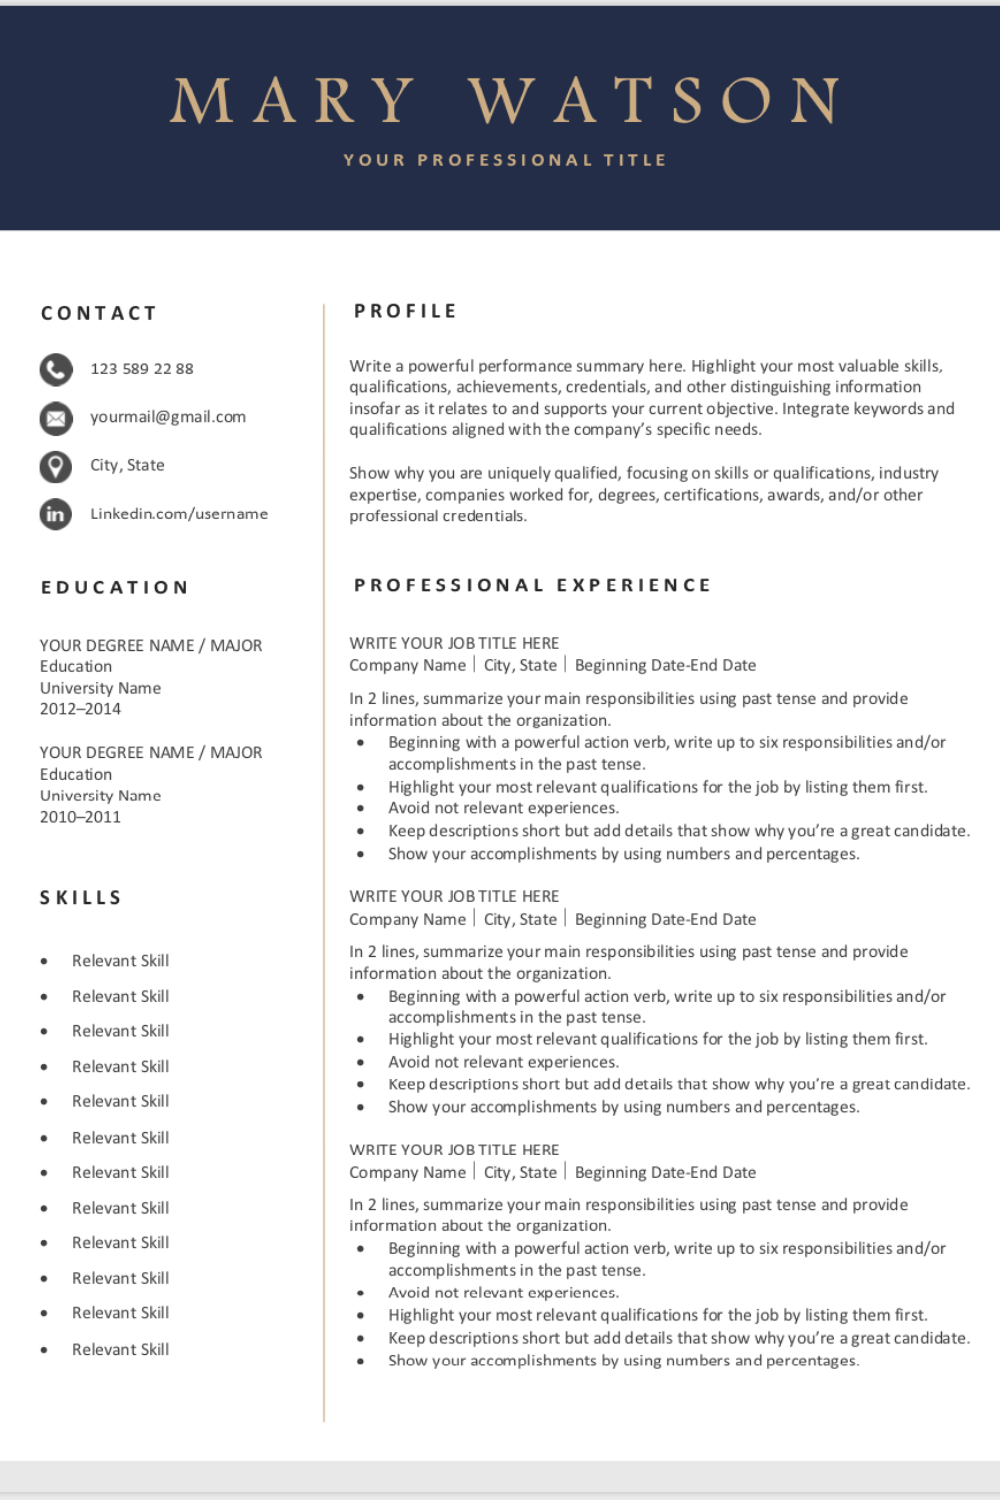 Are You Looking For A Free Simple Resume Template Sign Up For Our Job Search Tips And Downlo Resume Template Job Resume Template Resume Template Professional